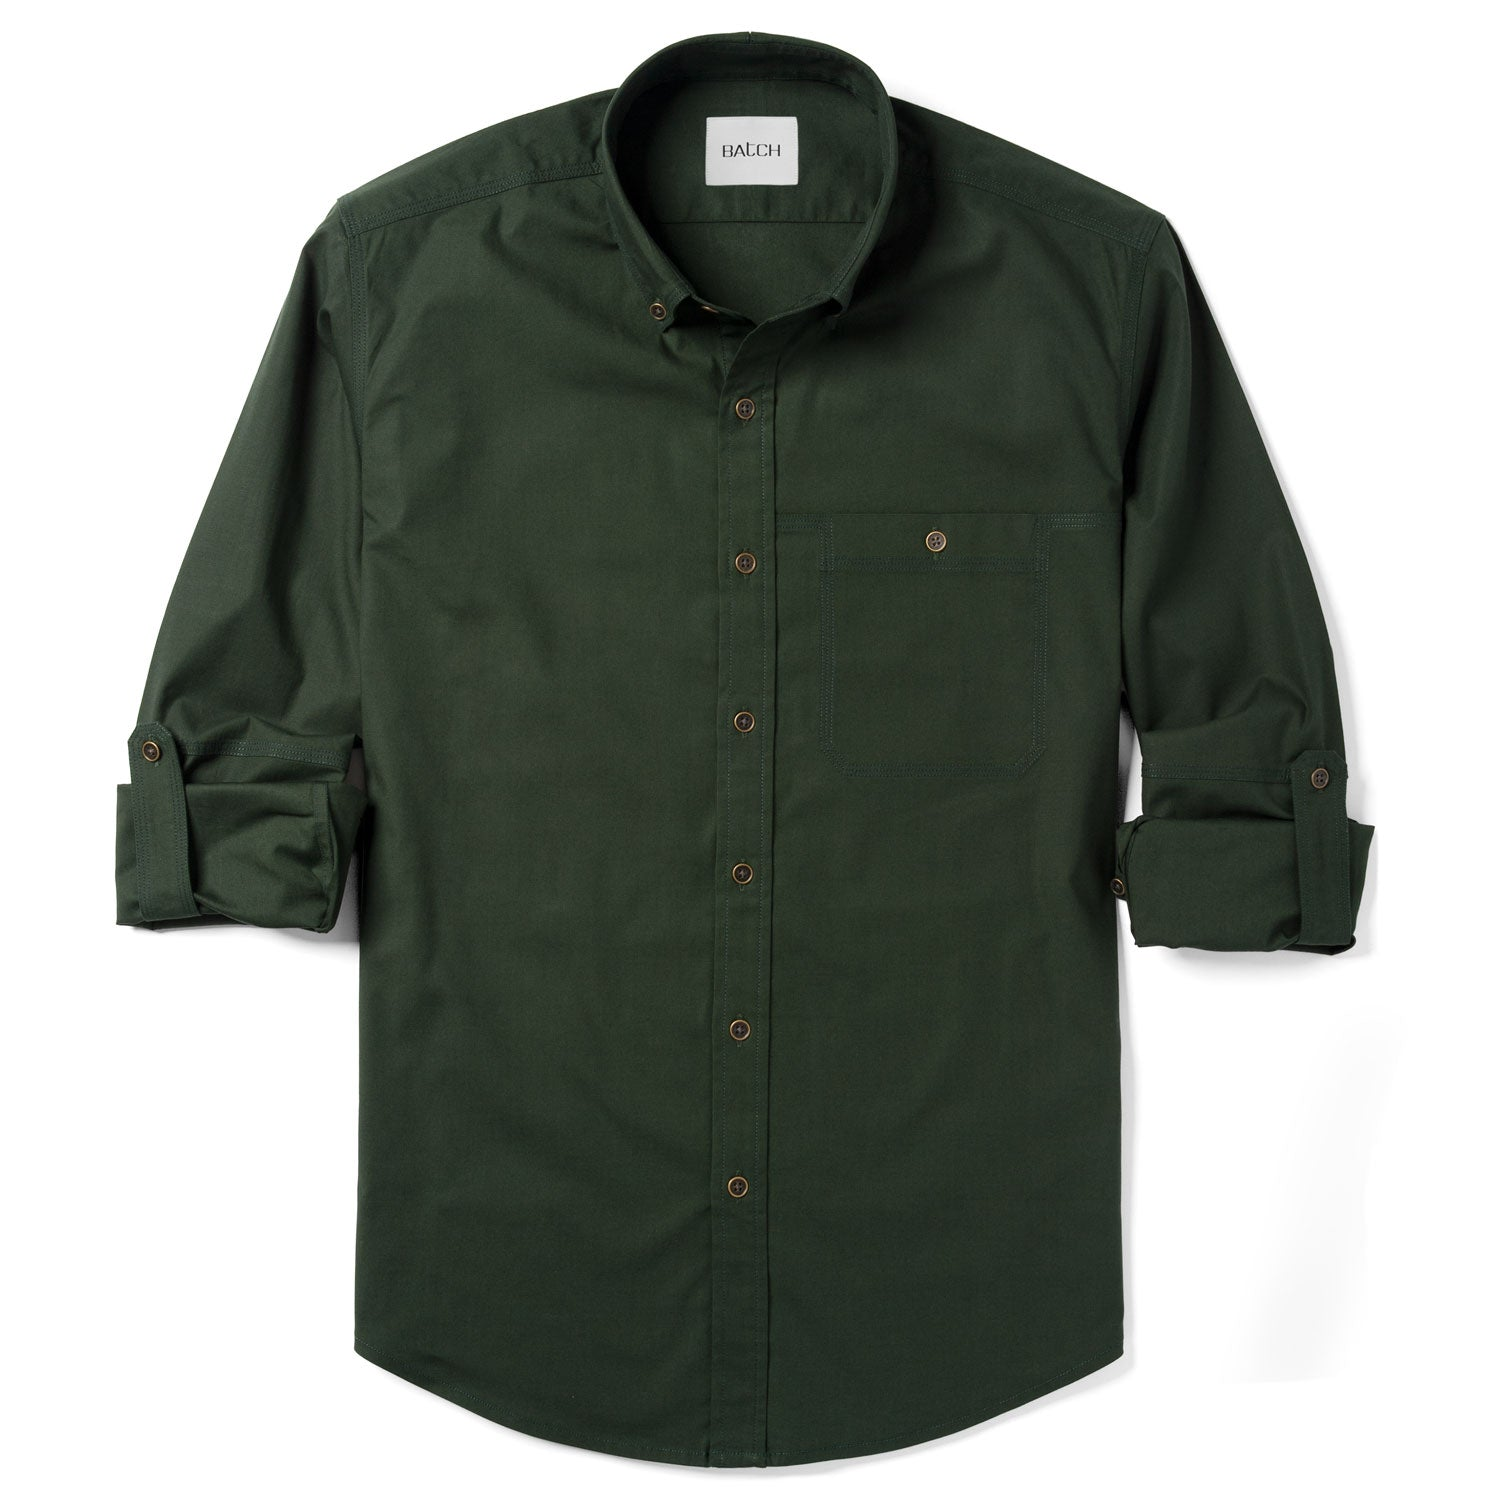 Mechanic One Pocket Casual Shirt – Olive Green Stretch Twill